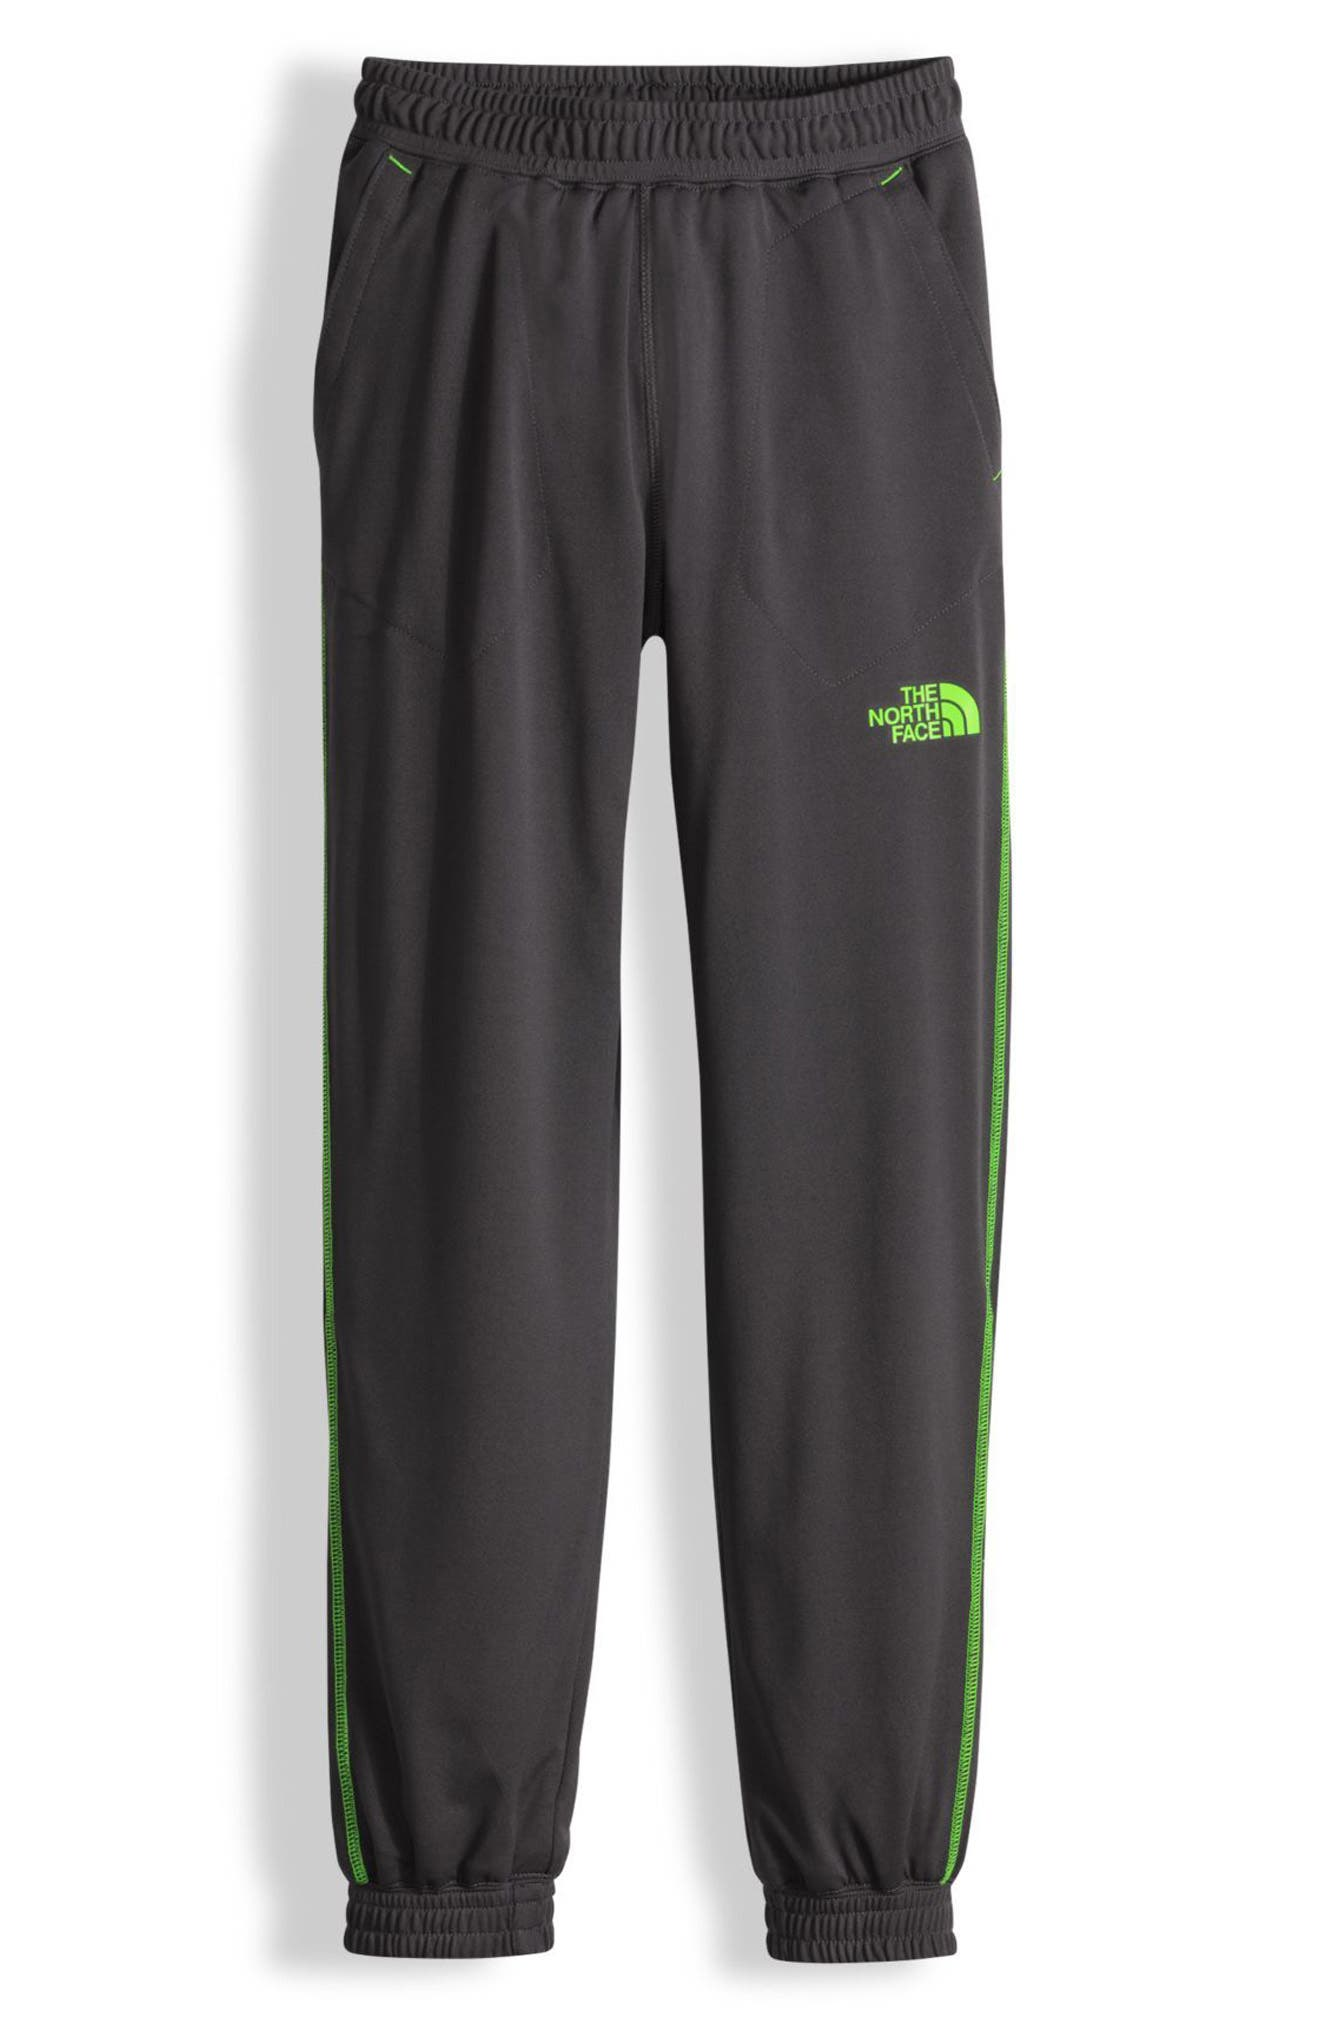 THE NORTH FACE Mak Sweatpants